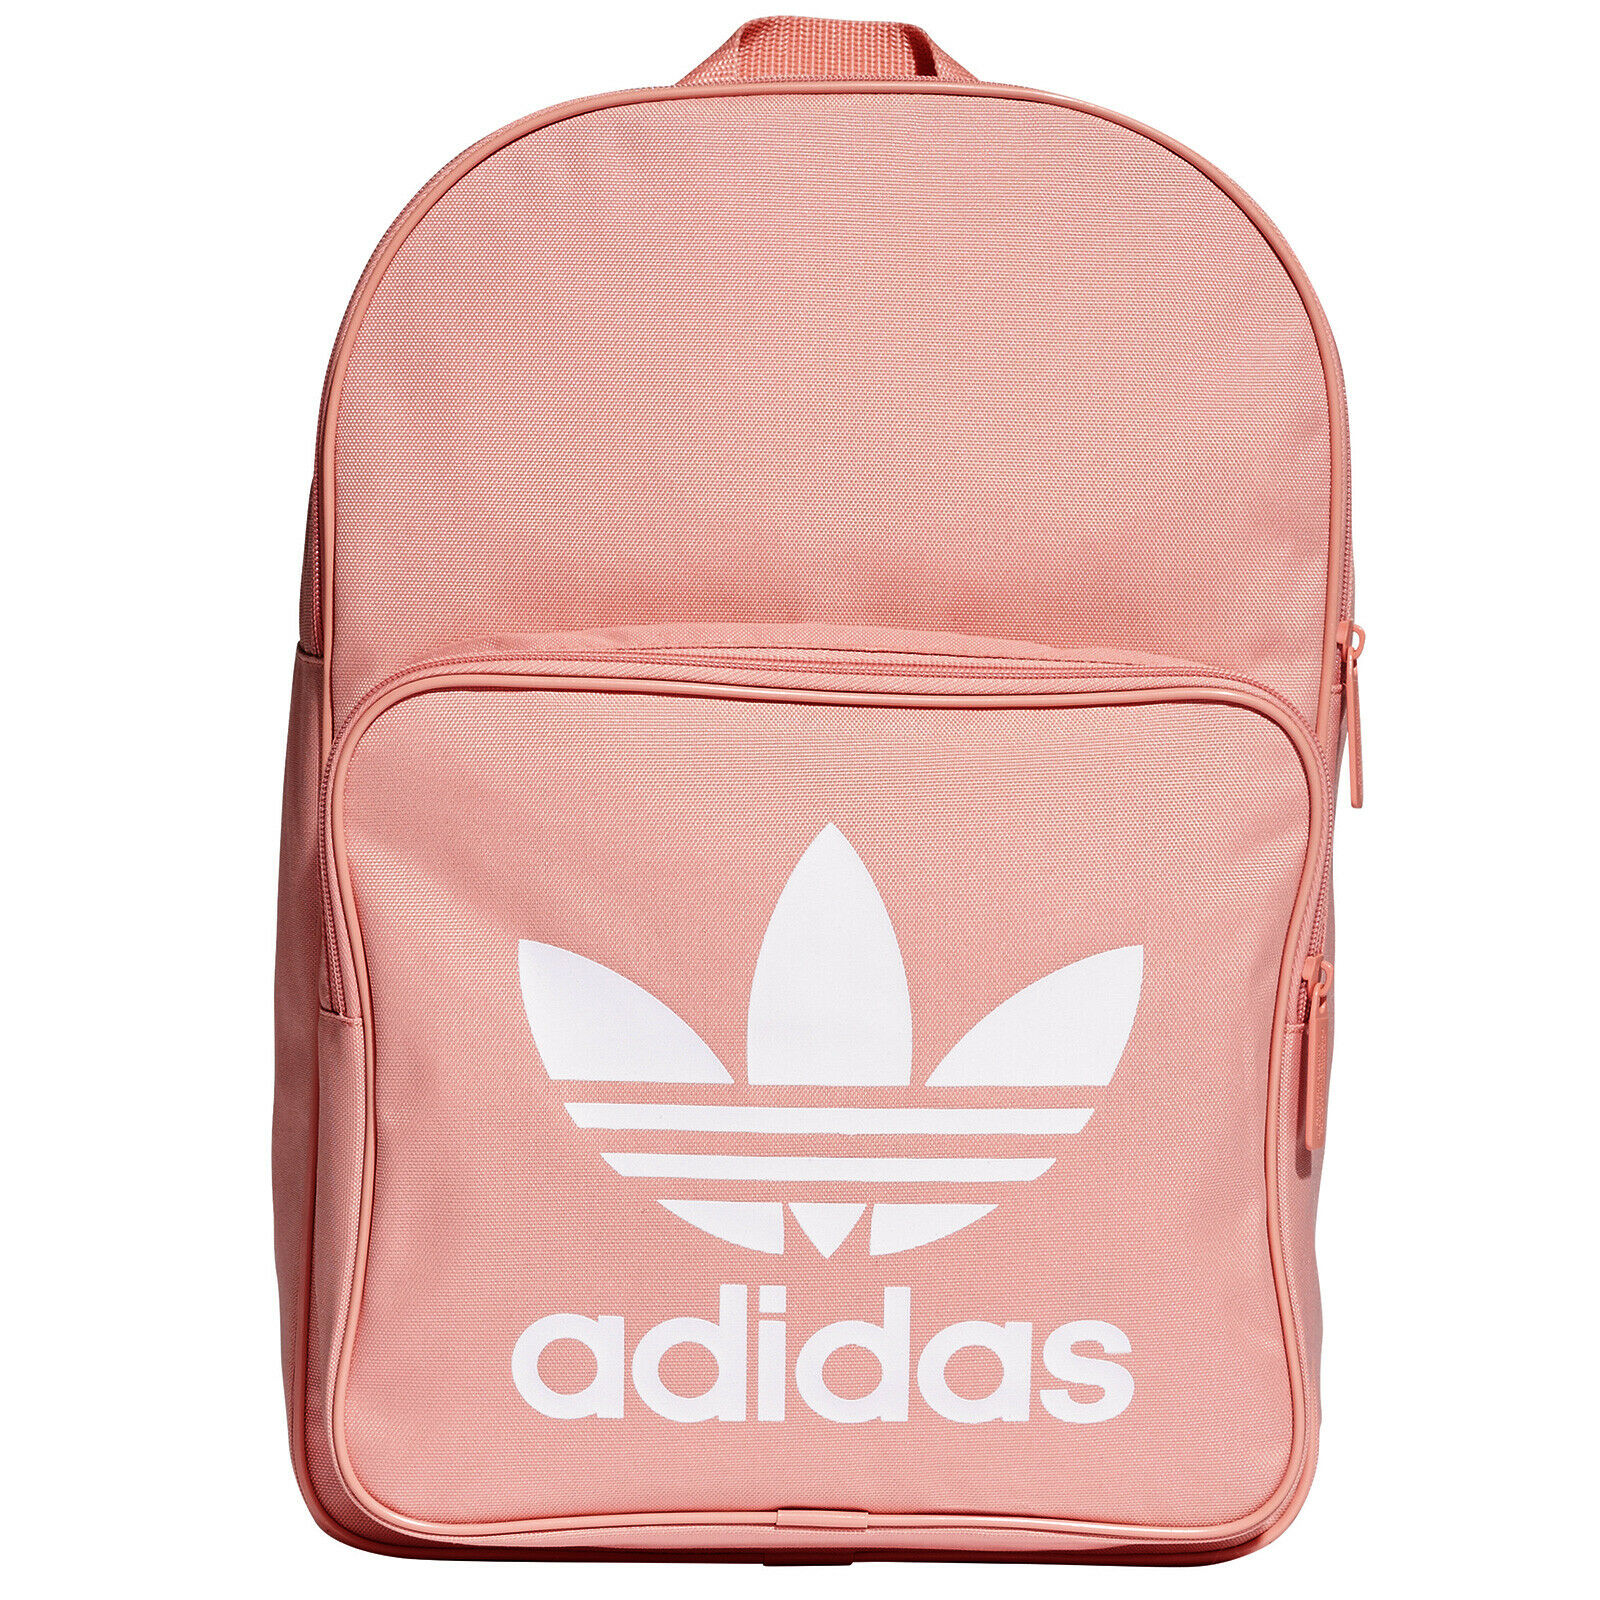 adidas Classic Sport Backpack Pink 24L Internal Divider Front Zip Pocket School